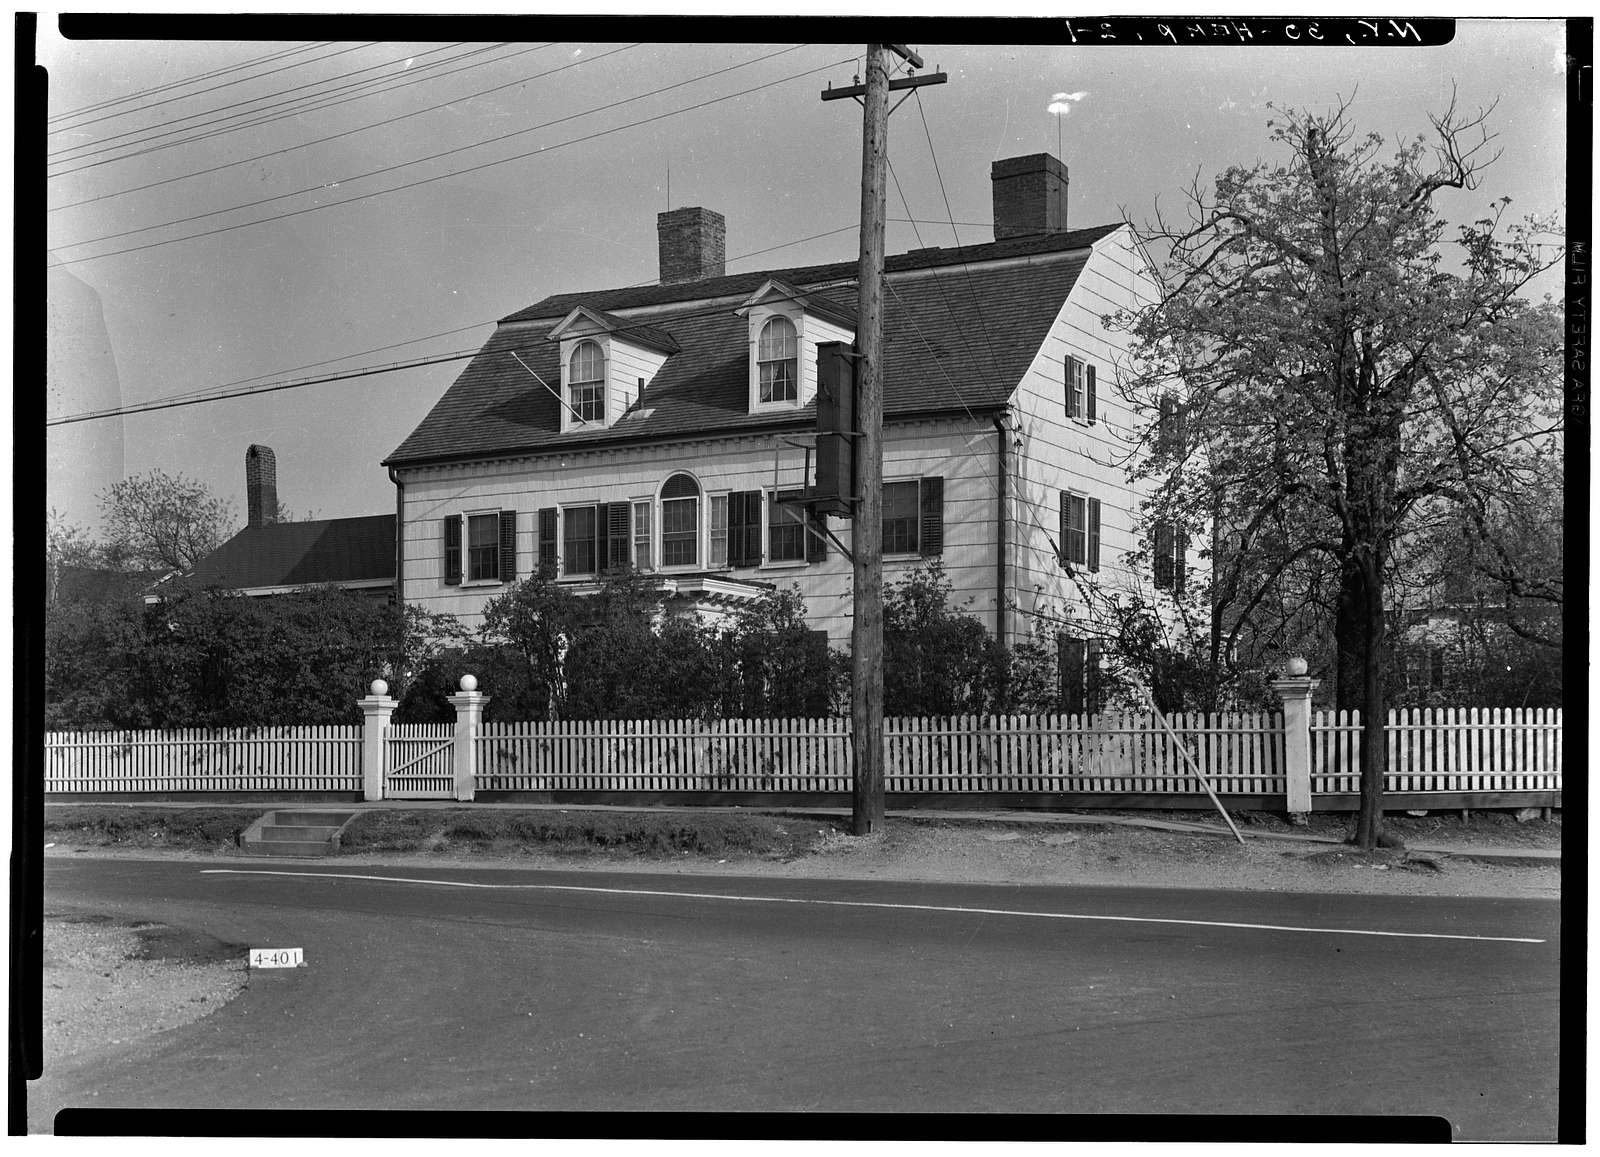 St. George's Rectory, Prospect & Greenwich Streets, Hempstead, Nassau County, NY